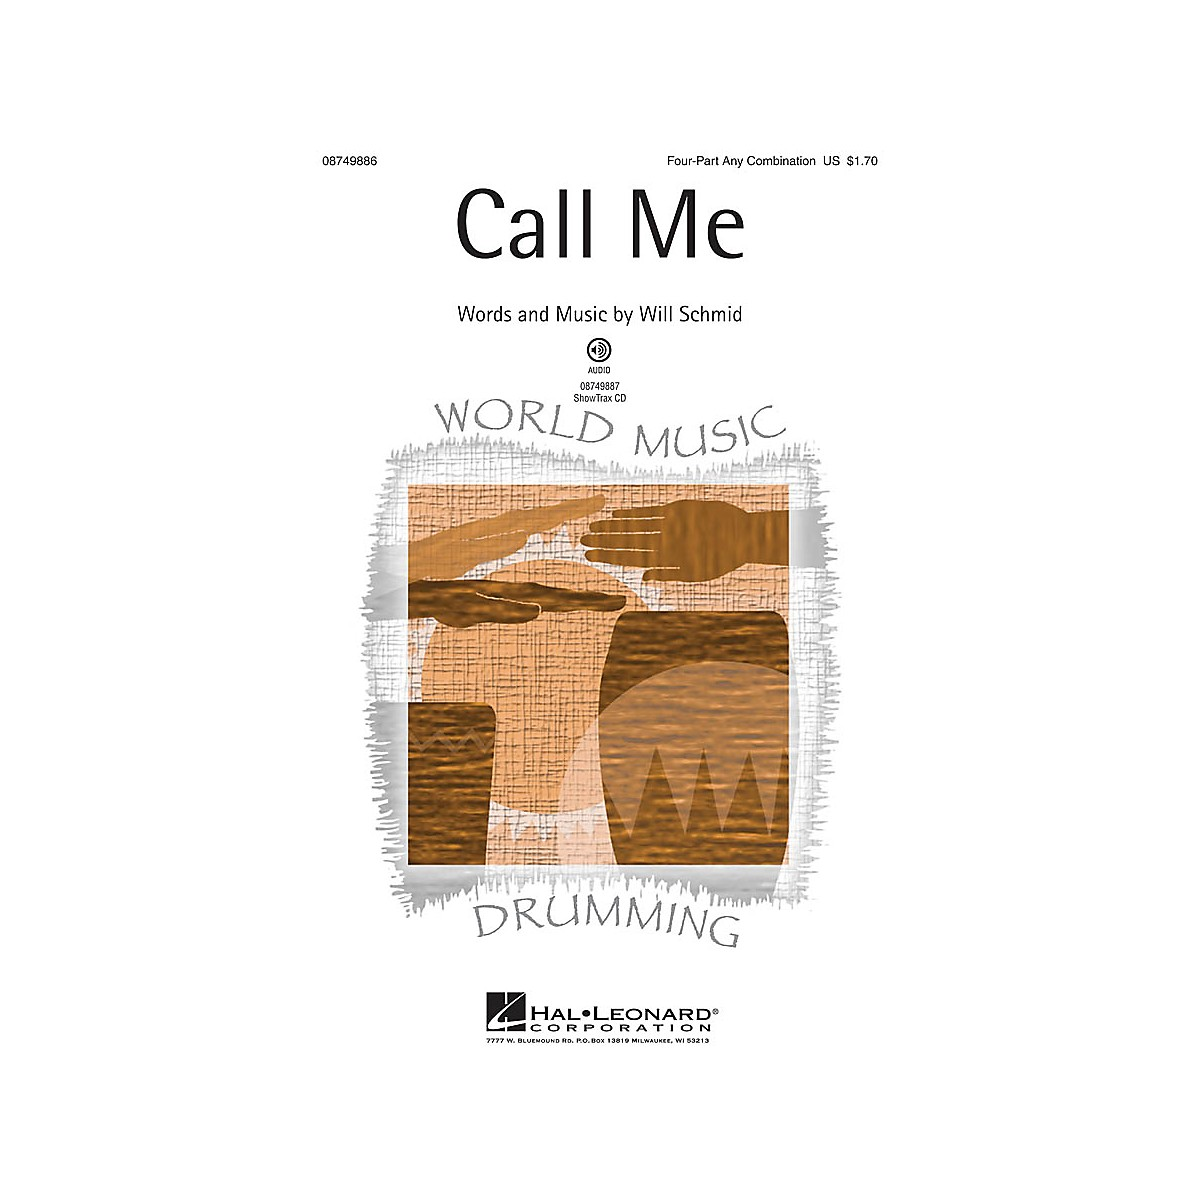 Hal Leonard Call Me 4 Part Any Combination composed by Will Schmid